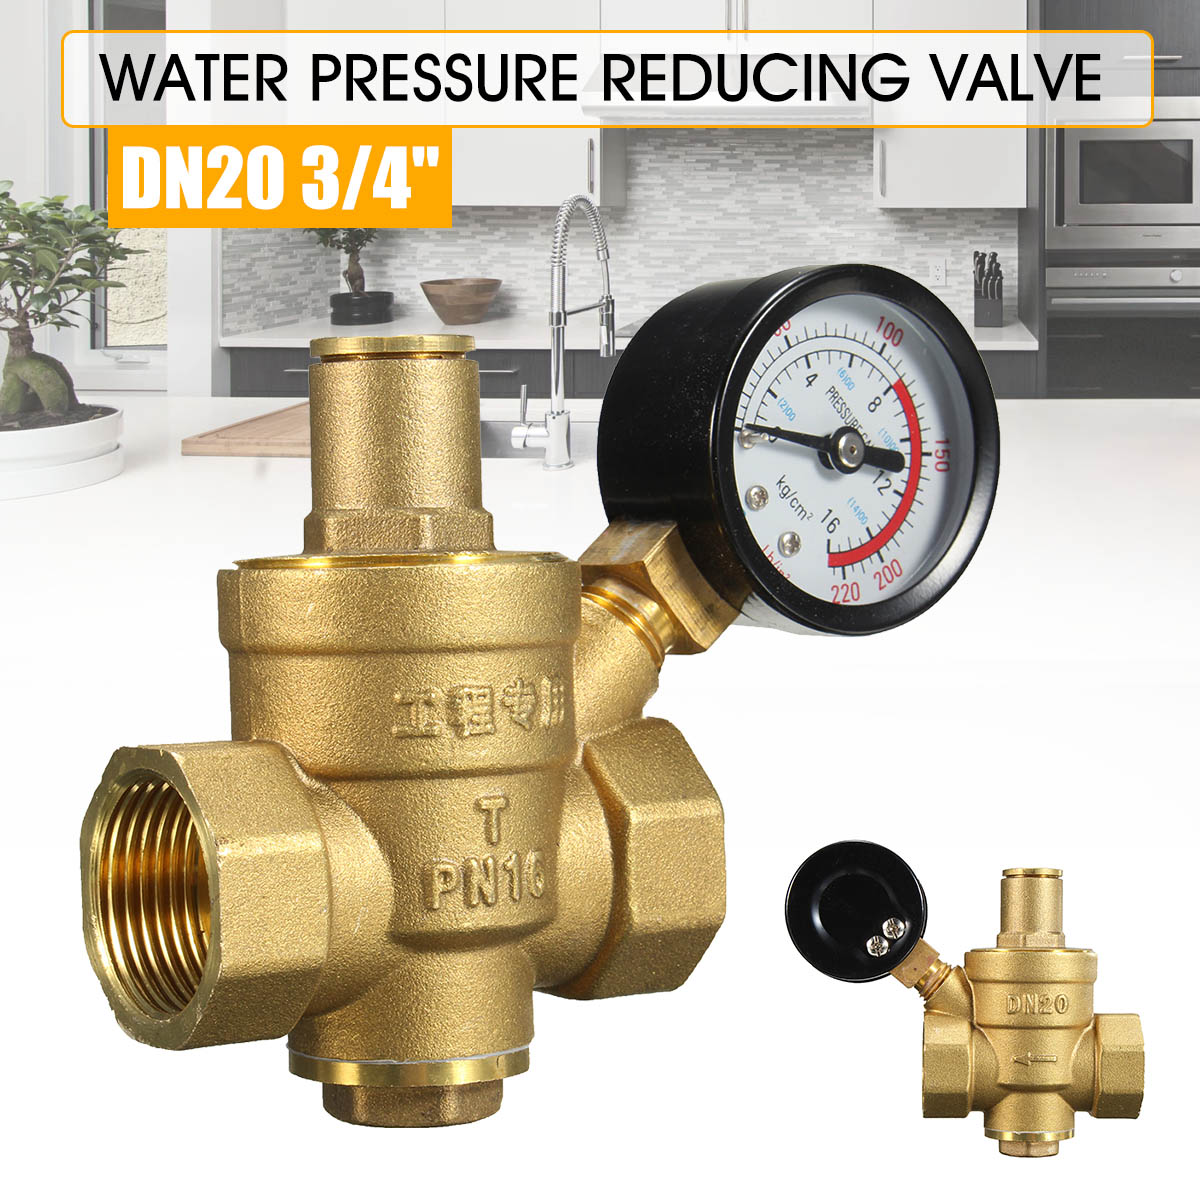 DN20 NPT 3/4'' Regulator Brass Water Pressure Regulator Reducer PN 1.6 Adjustable With Gauge Meter For Hydraulic/Water Purifier